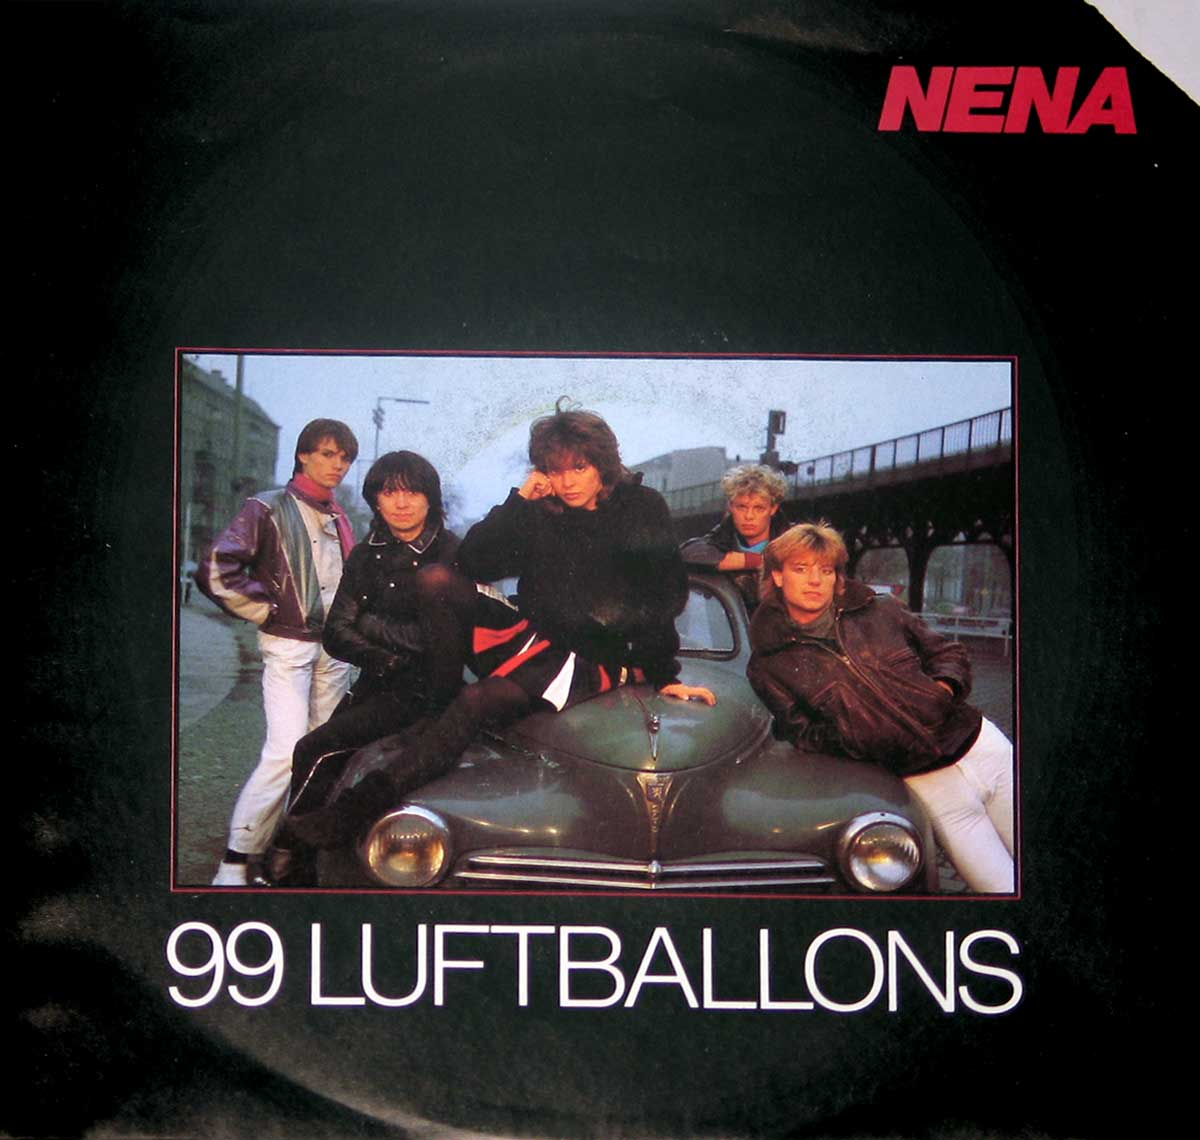 large photo of the album front cover of: NENA 99 Luftballons / Ich Bleib Im Bett